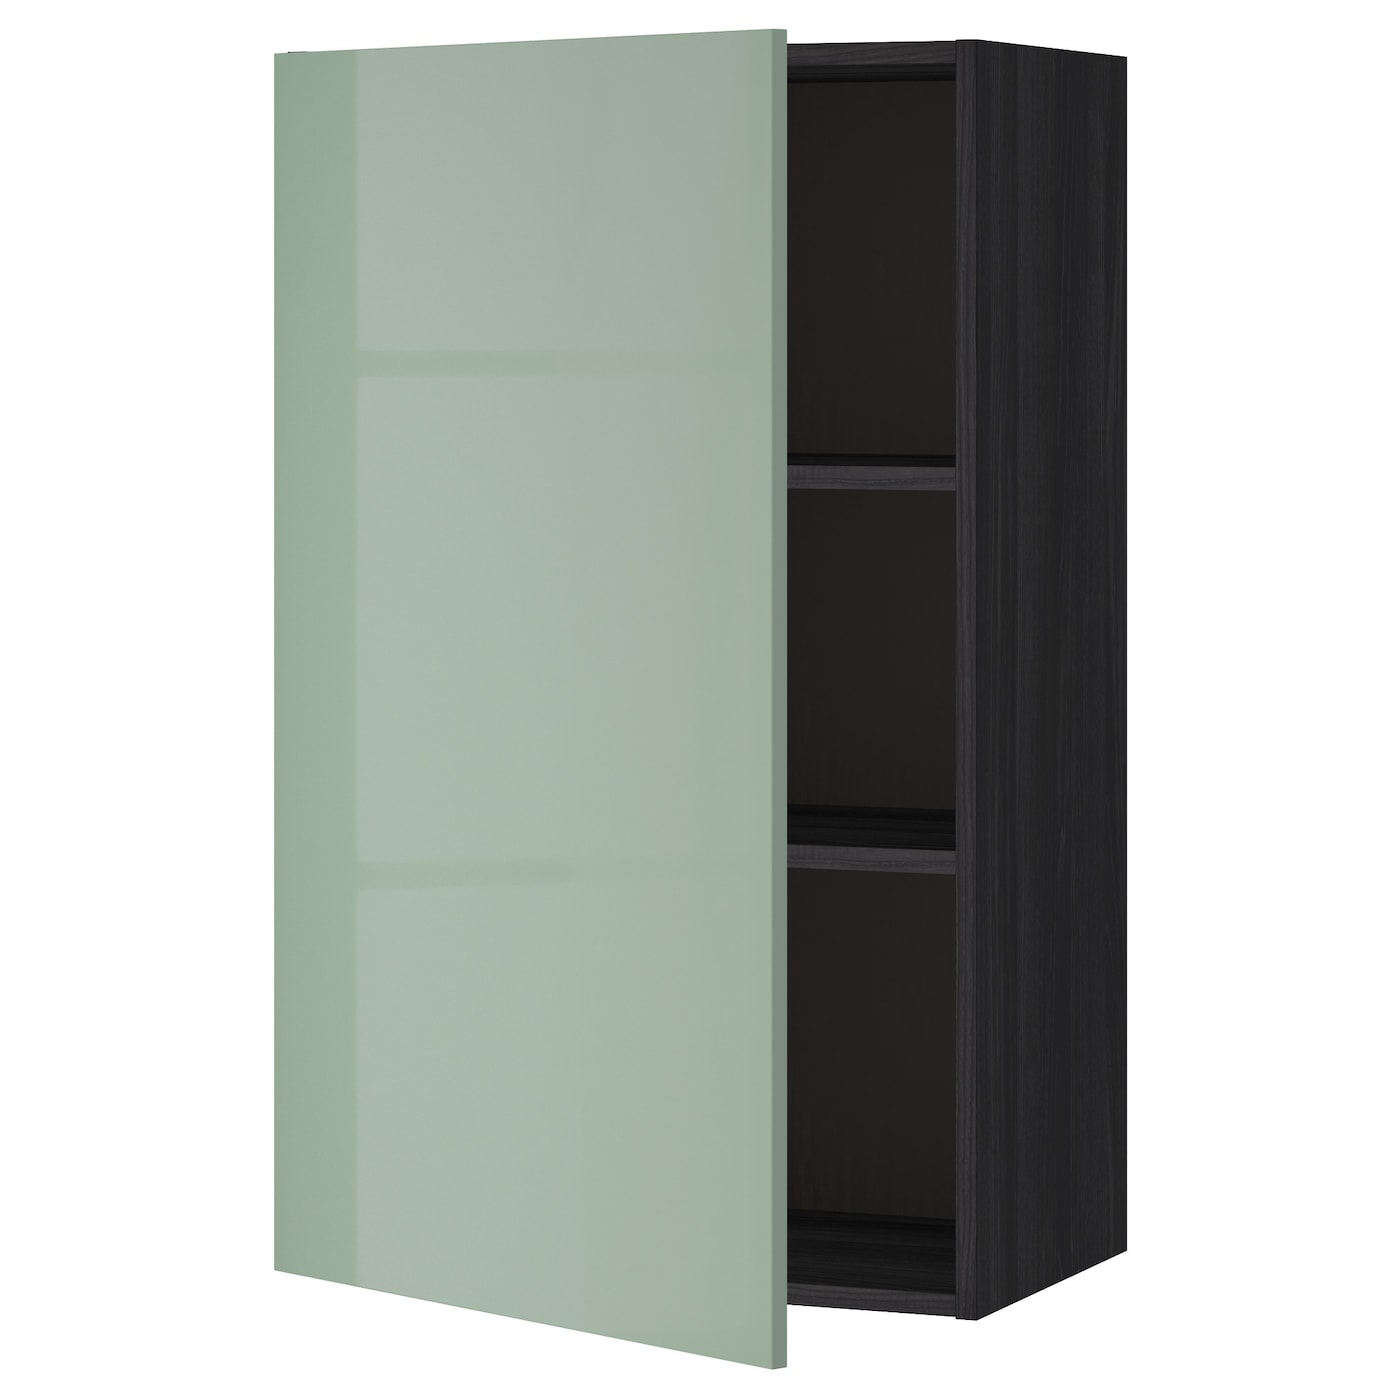 Metod Wall Cabinet With Shelves: METOD Wall Cabinet With Shelves Black/kallarp Light Green